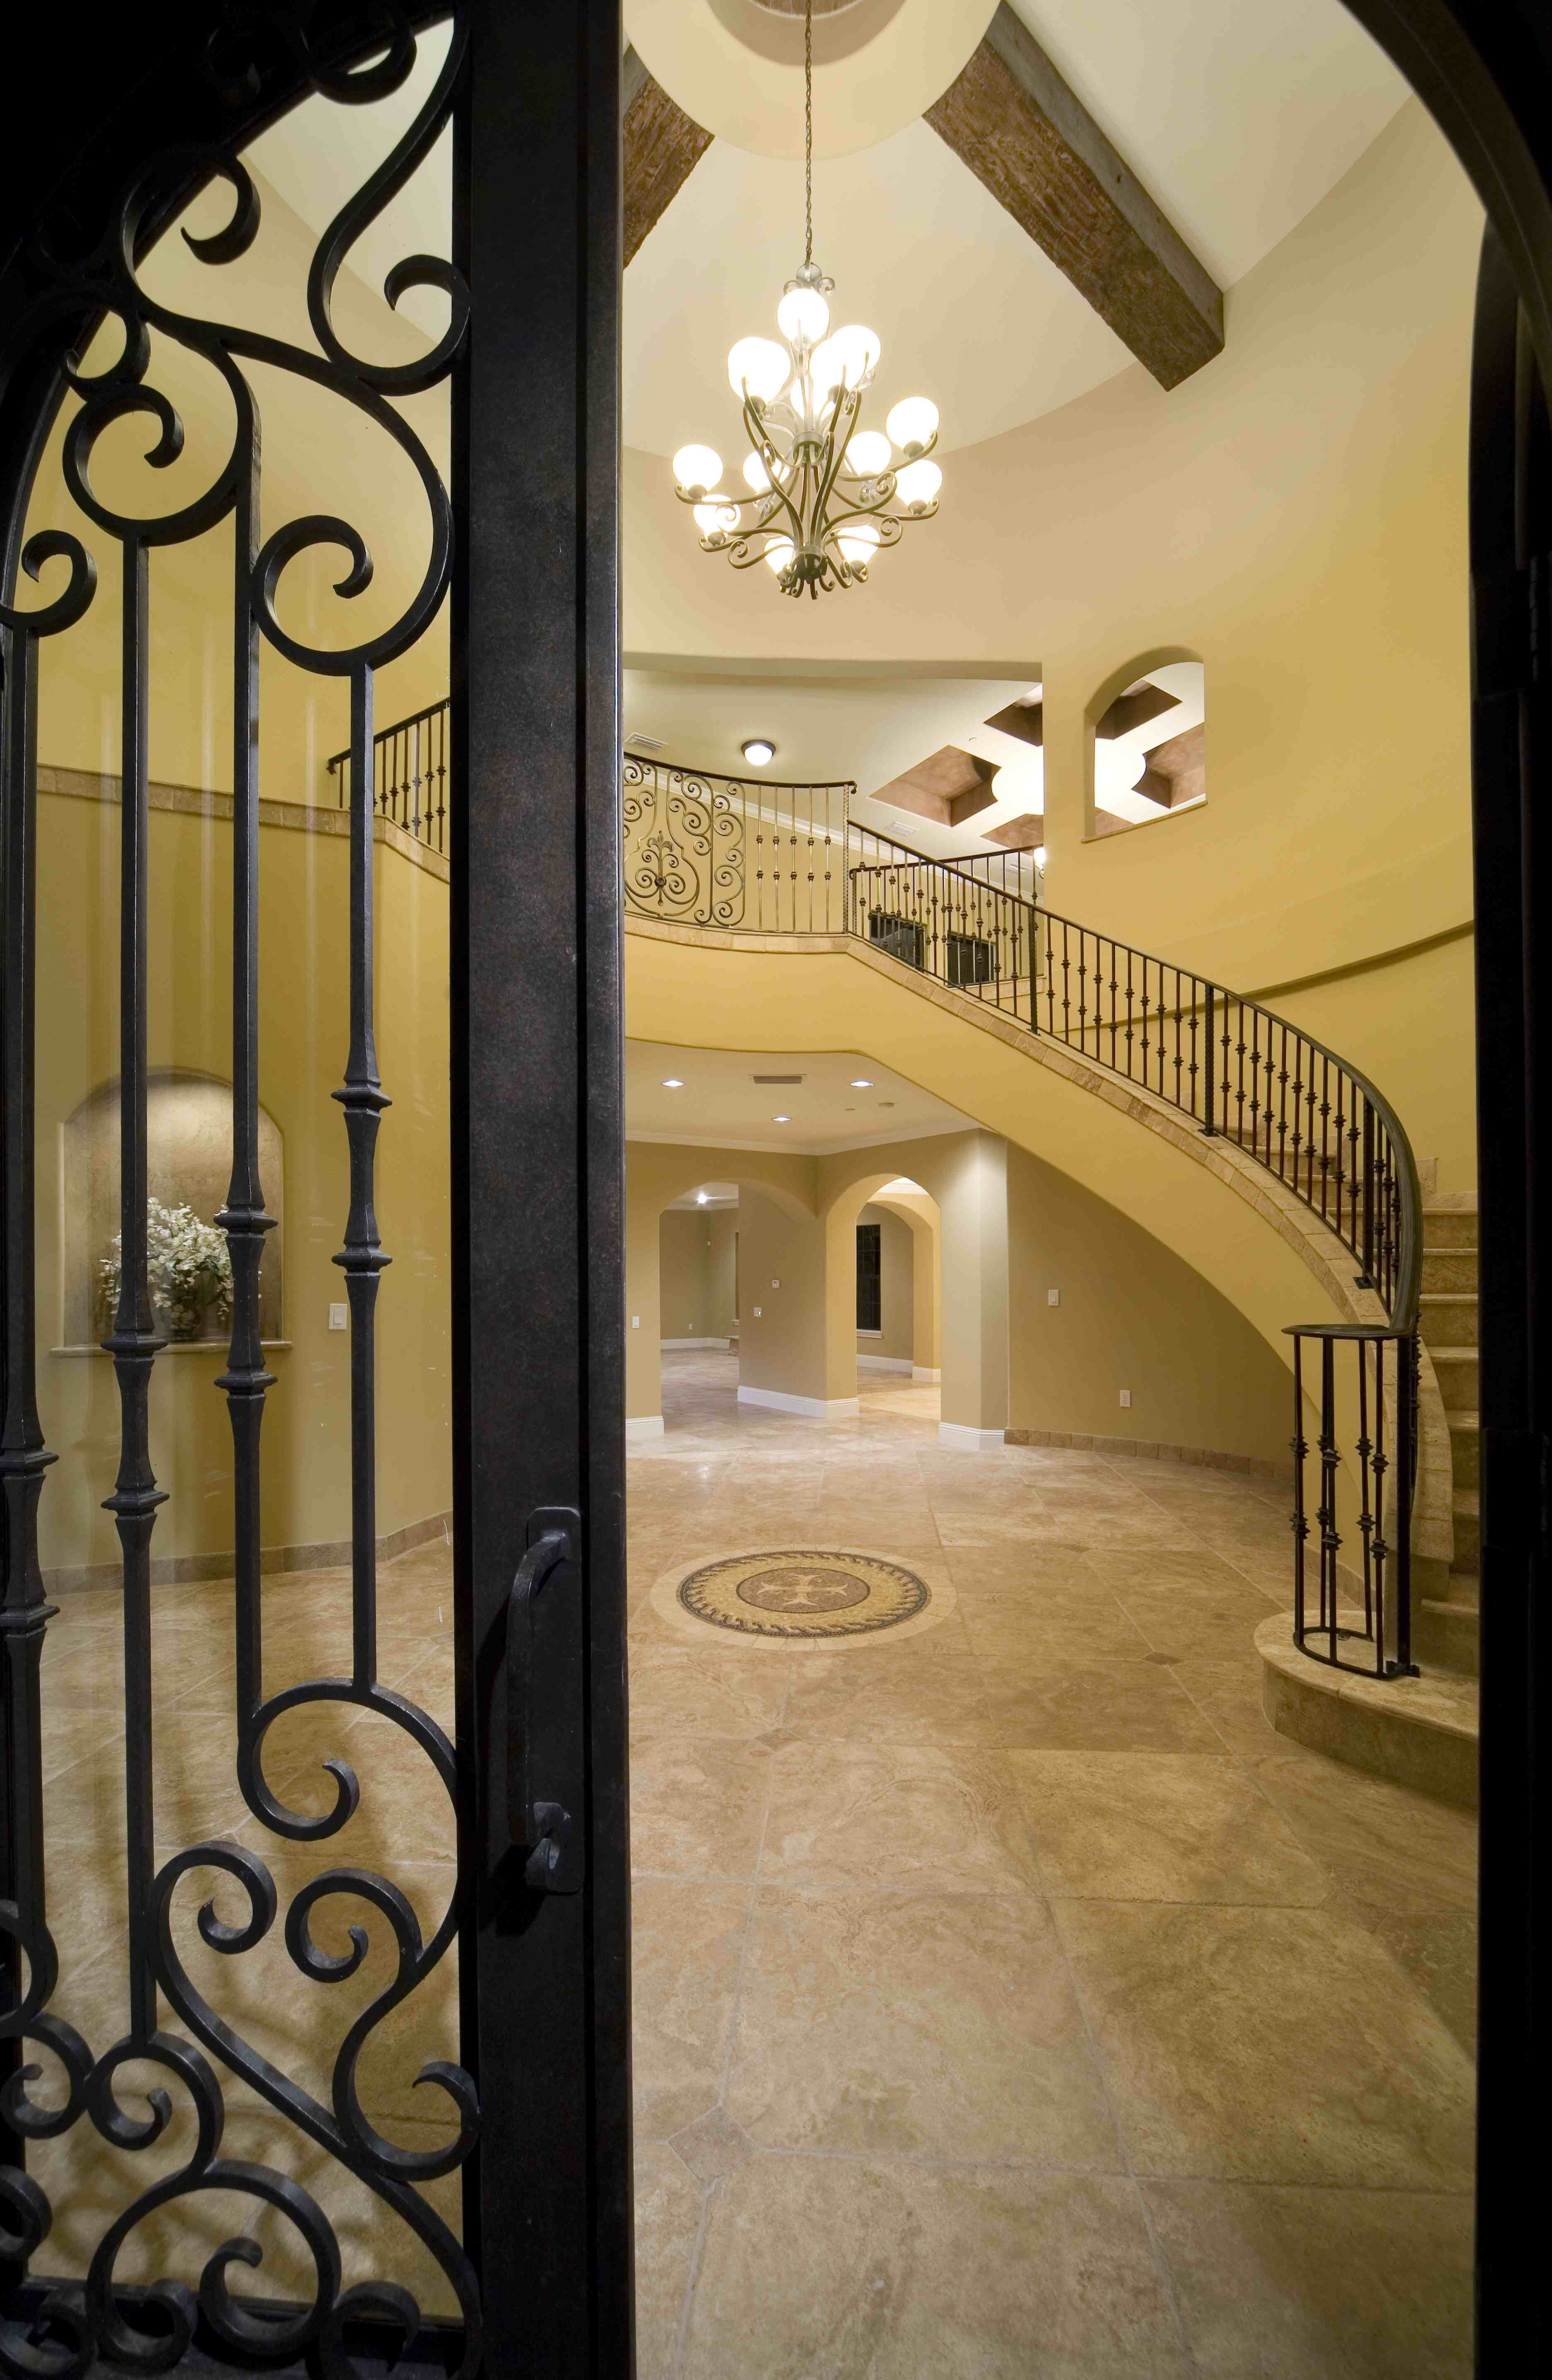 Wrought Iron Exterior Home Accents Design Tips For Wrought Iron Details